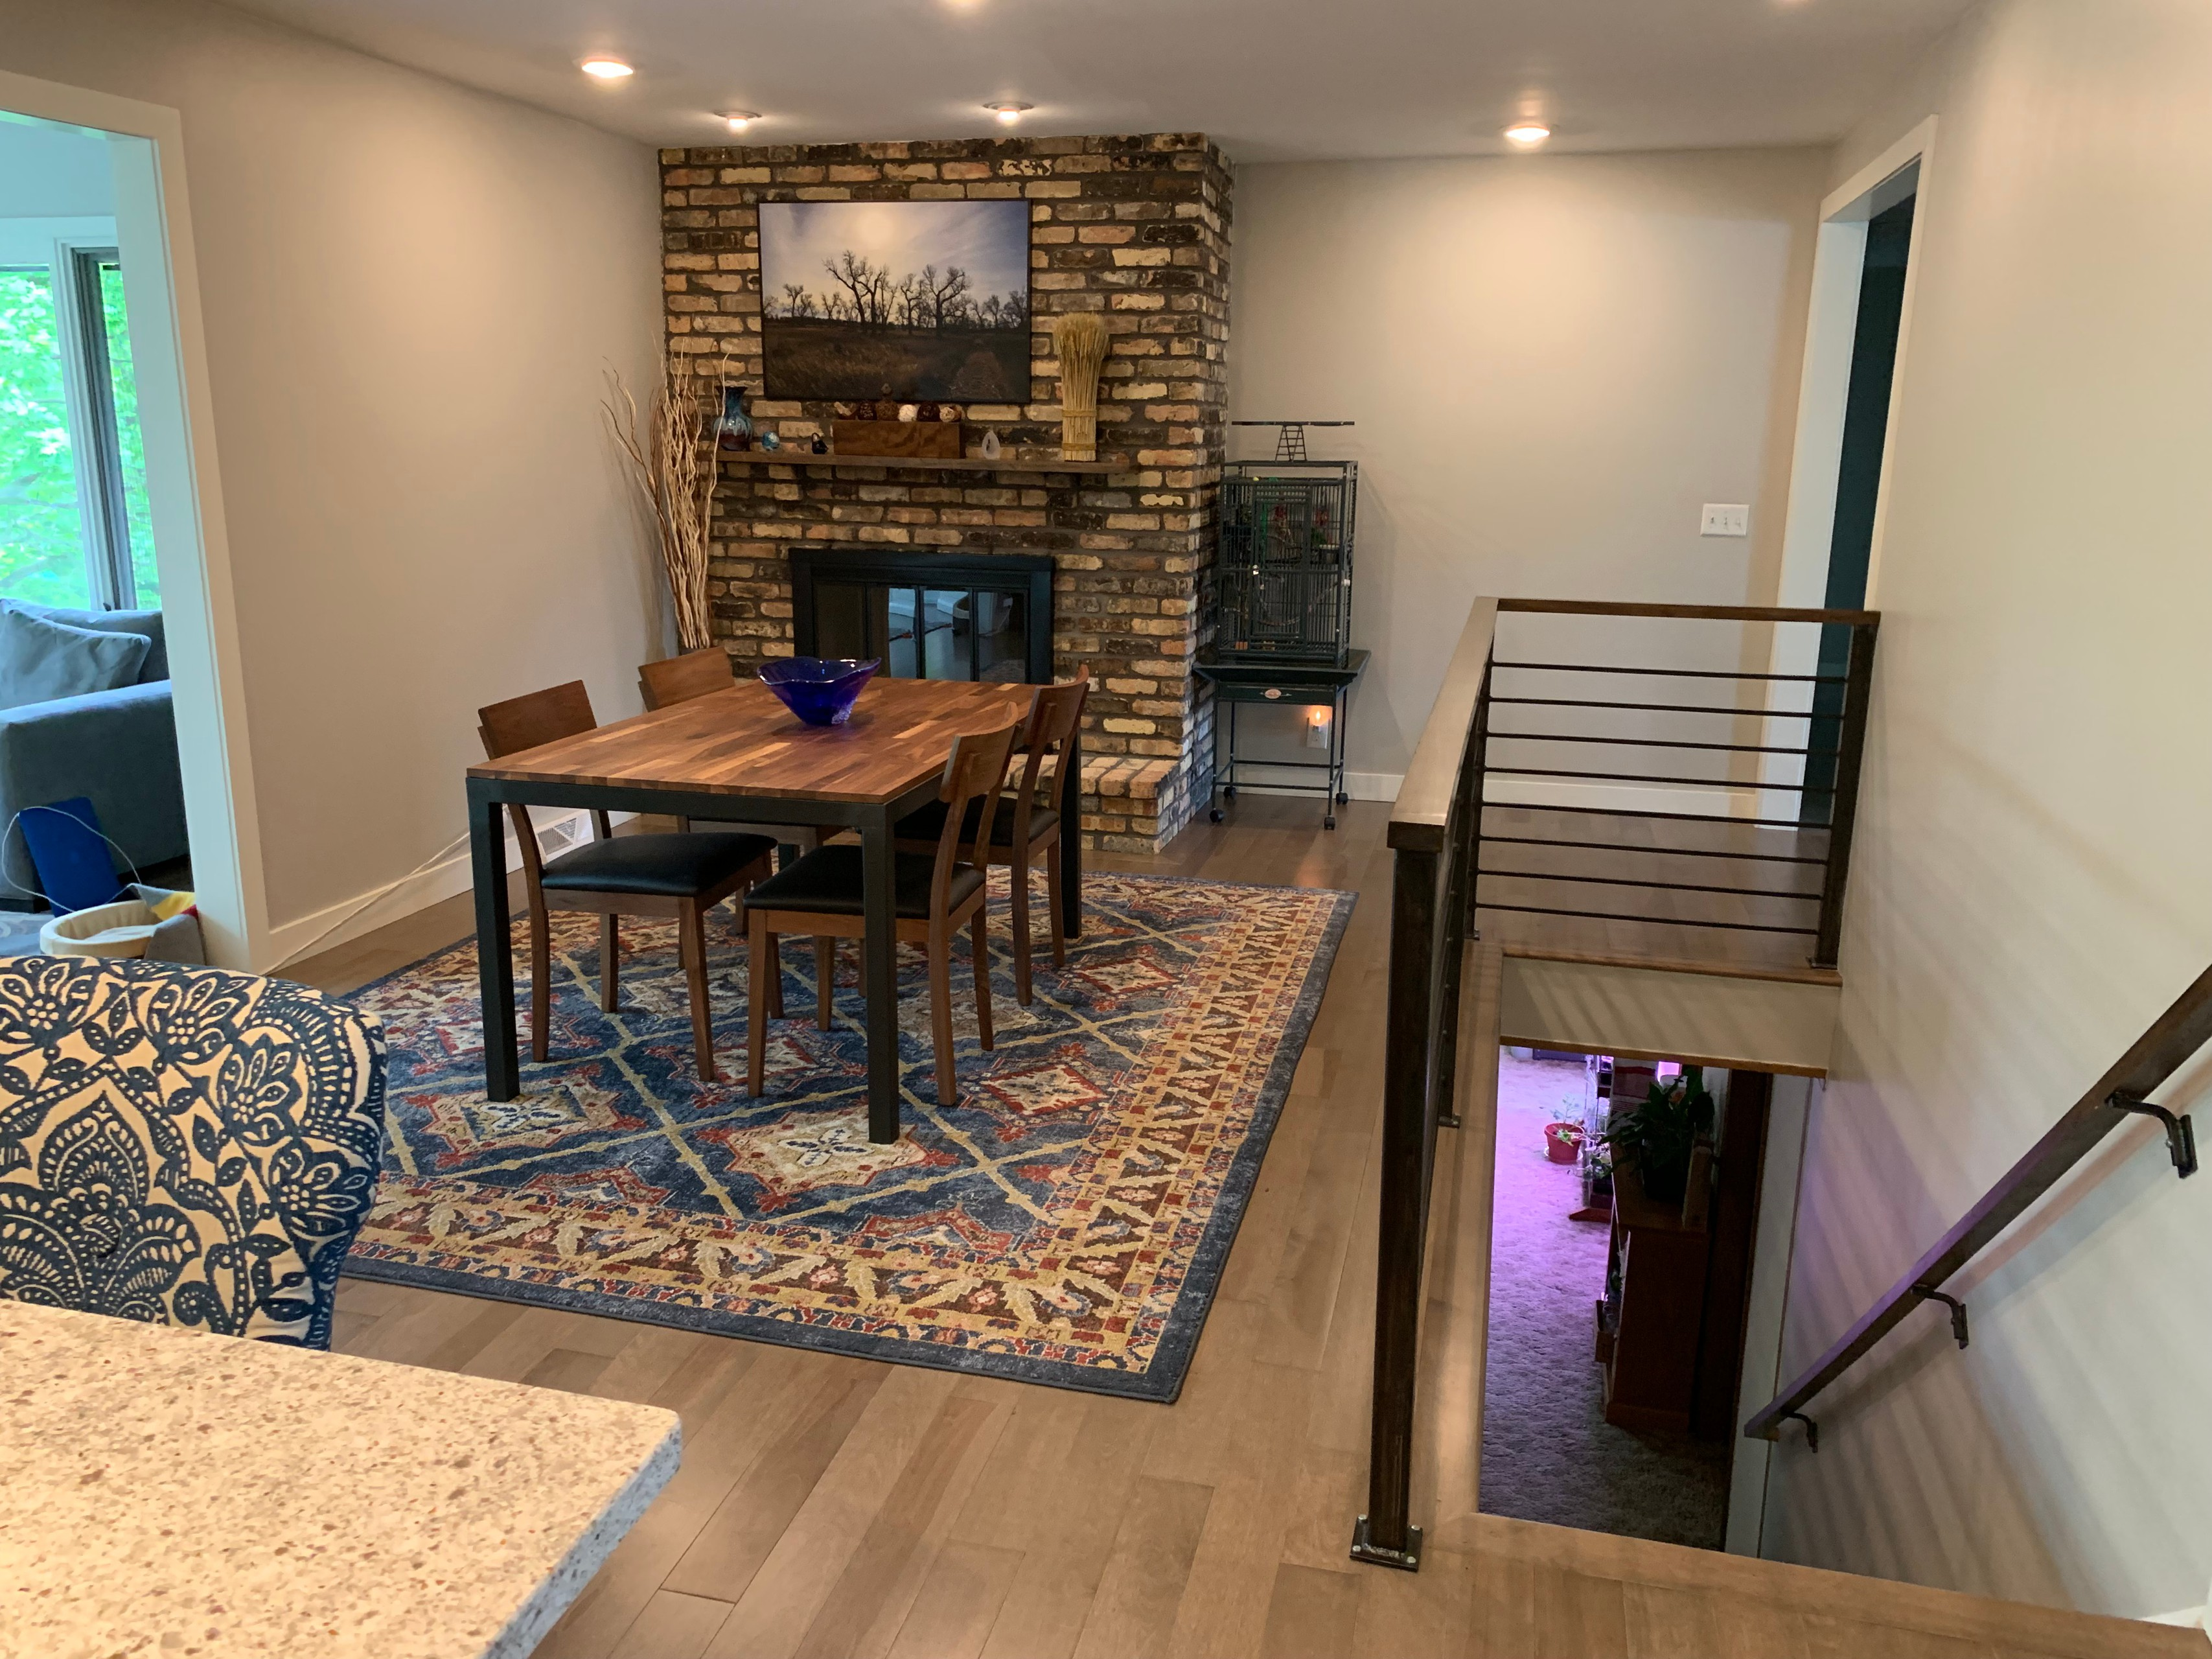 New Brighton - AFTER living space remodel